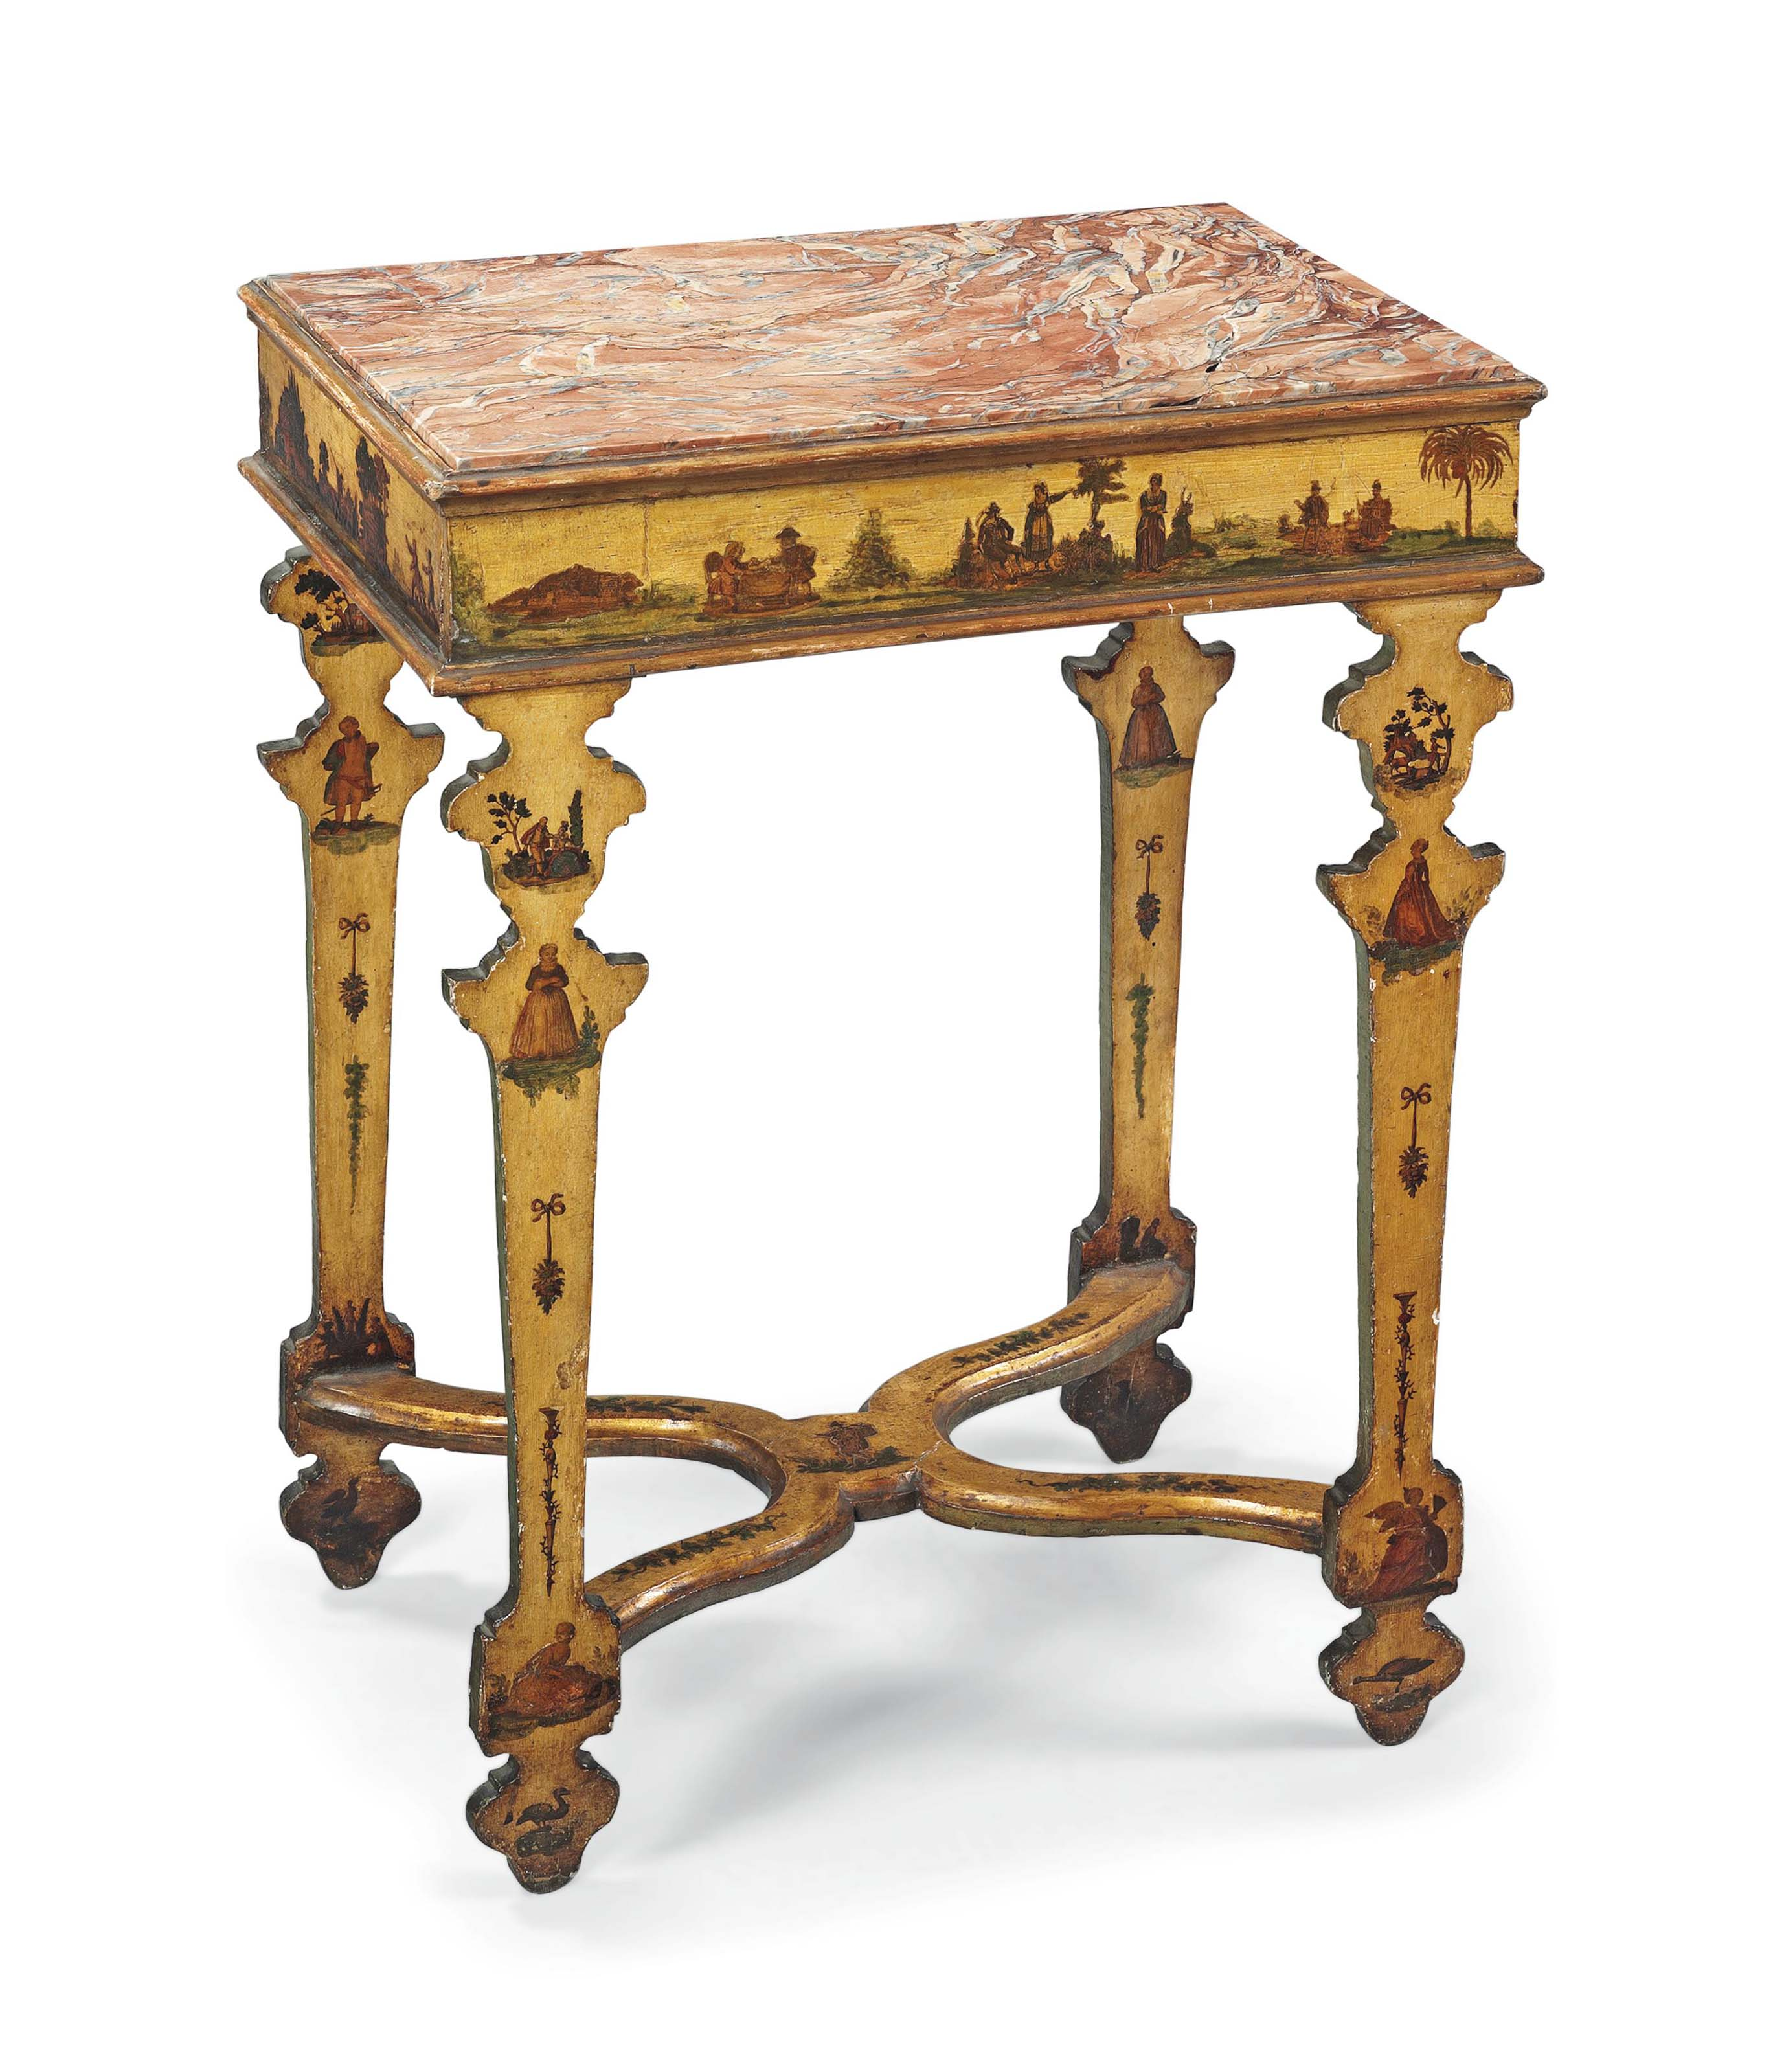 Image result for lacca povera table